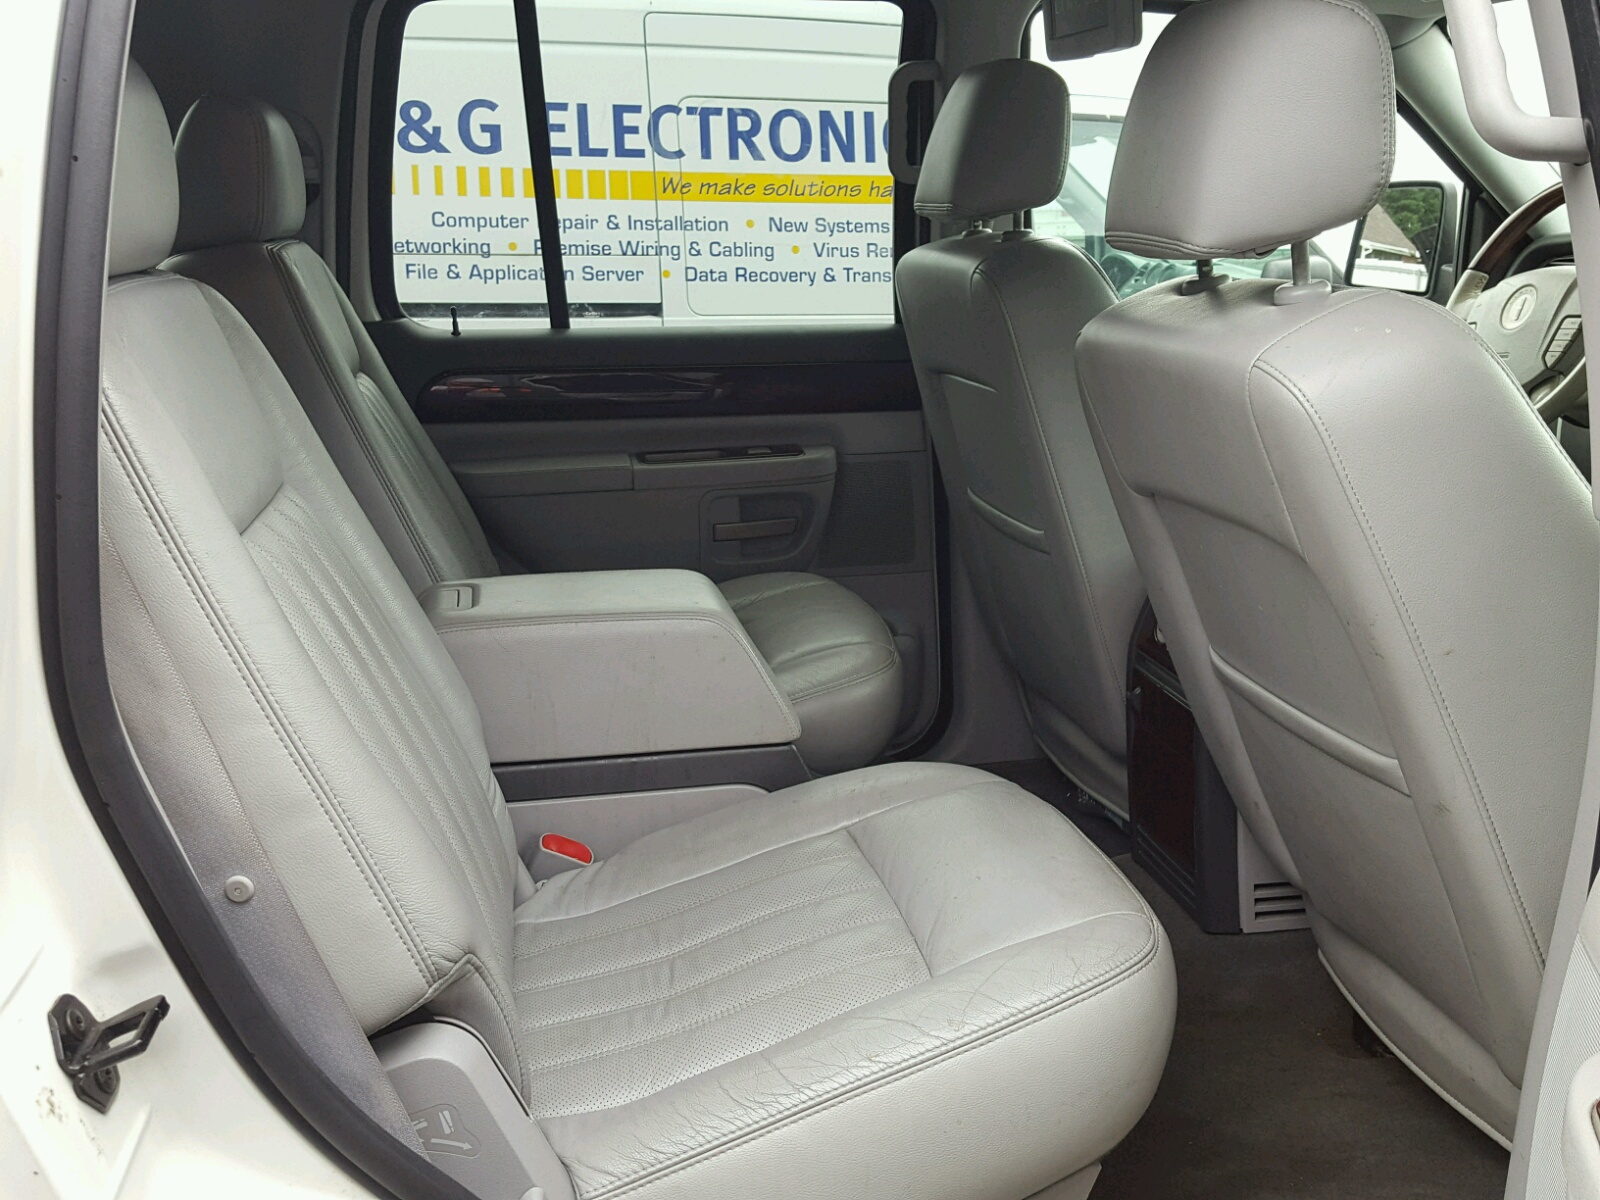 5lmeu88hx4zj00992 2004 White Lincoln Aviator On Sale In Md Seat Wiring 46l Detail View